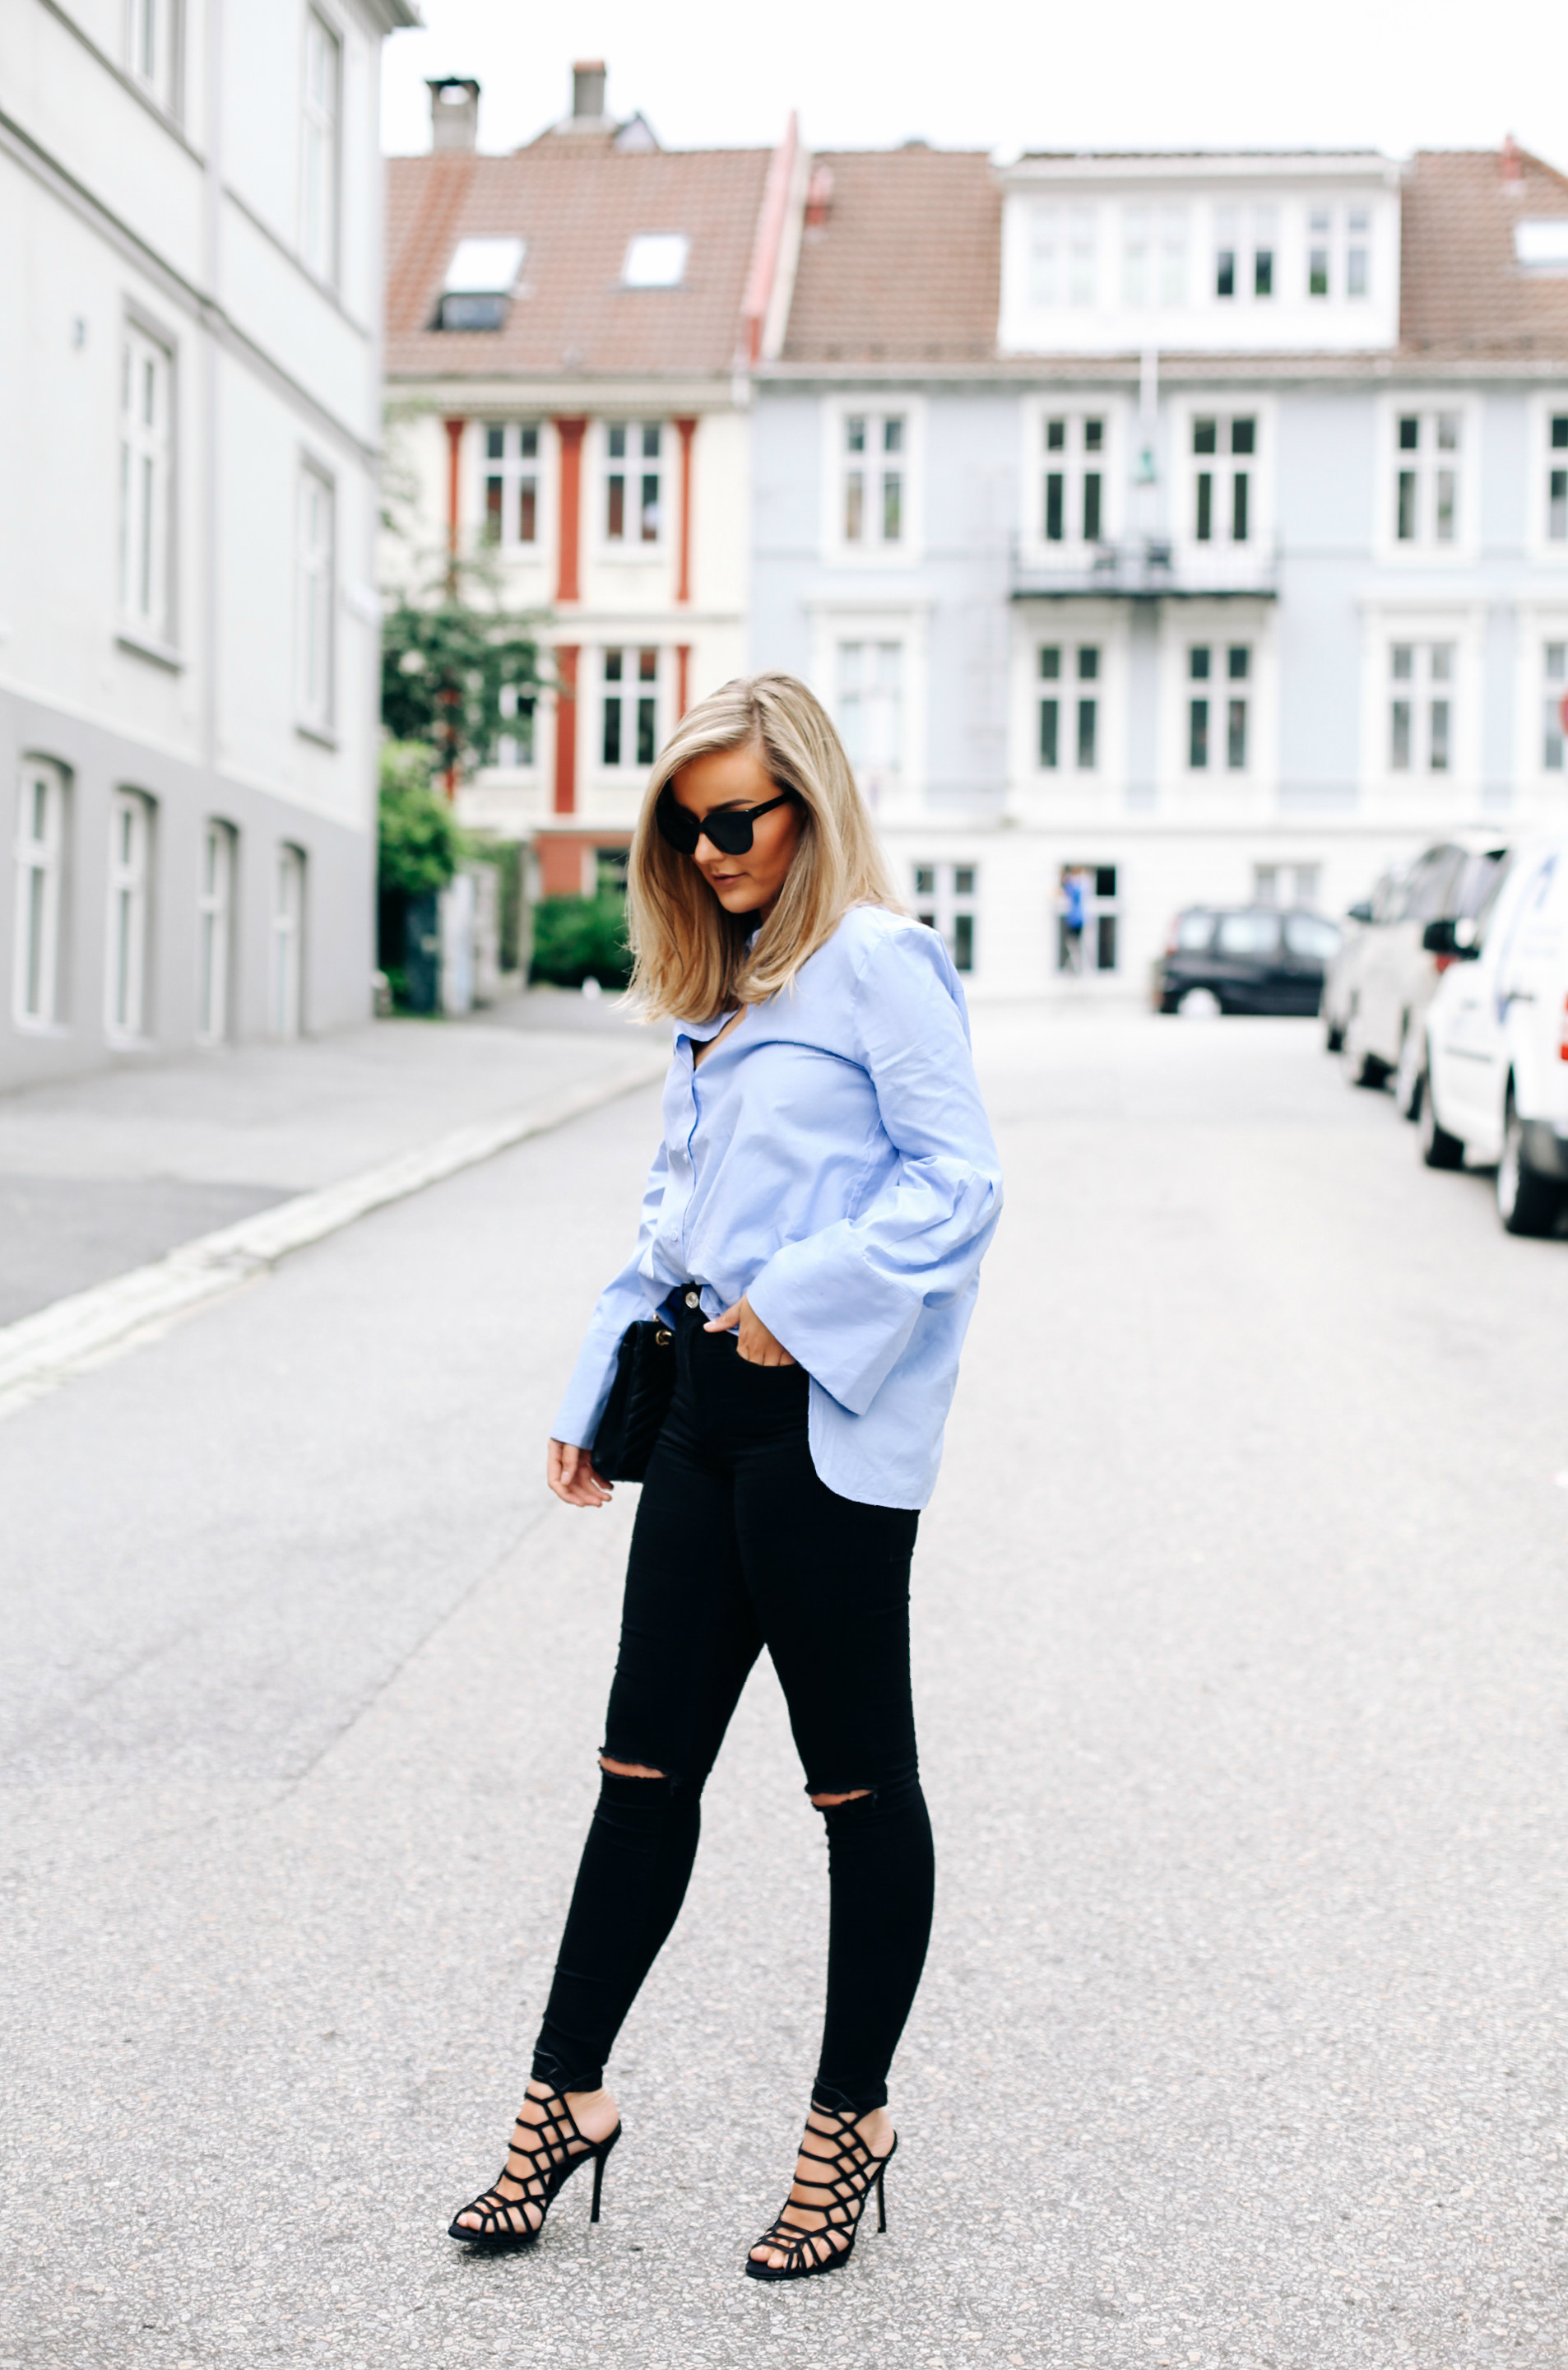 26264b8d My name is Eirin Kristiansen (21 y/o) and I put my heart and soul into  everything I do. I am passionate about fashion, interior, career & healthy  happy ...